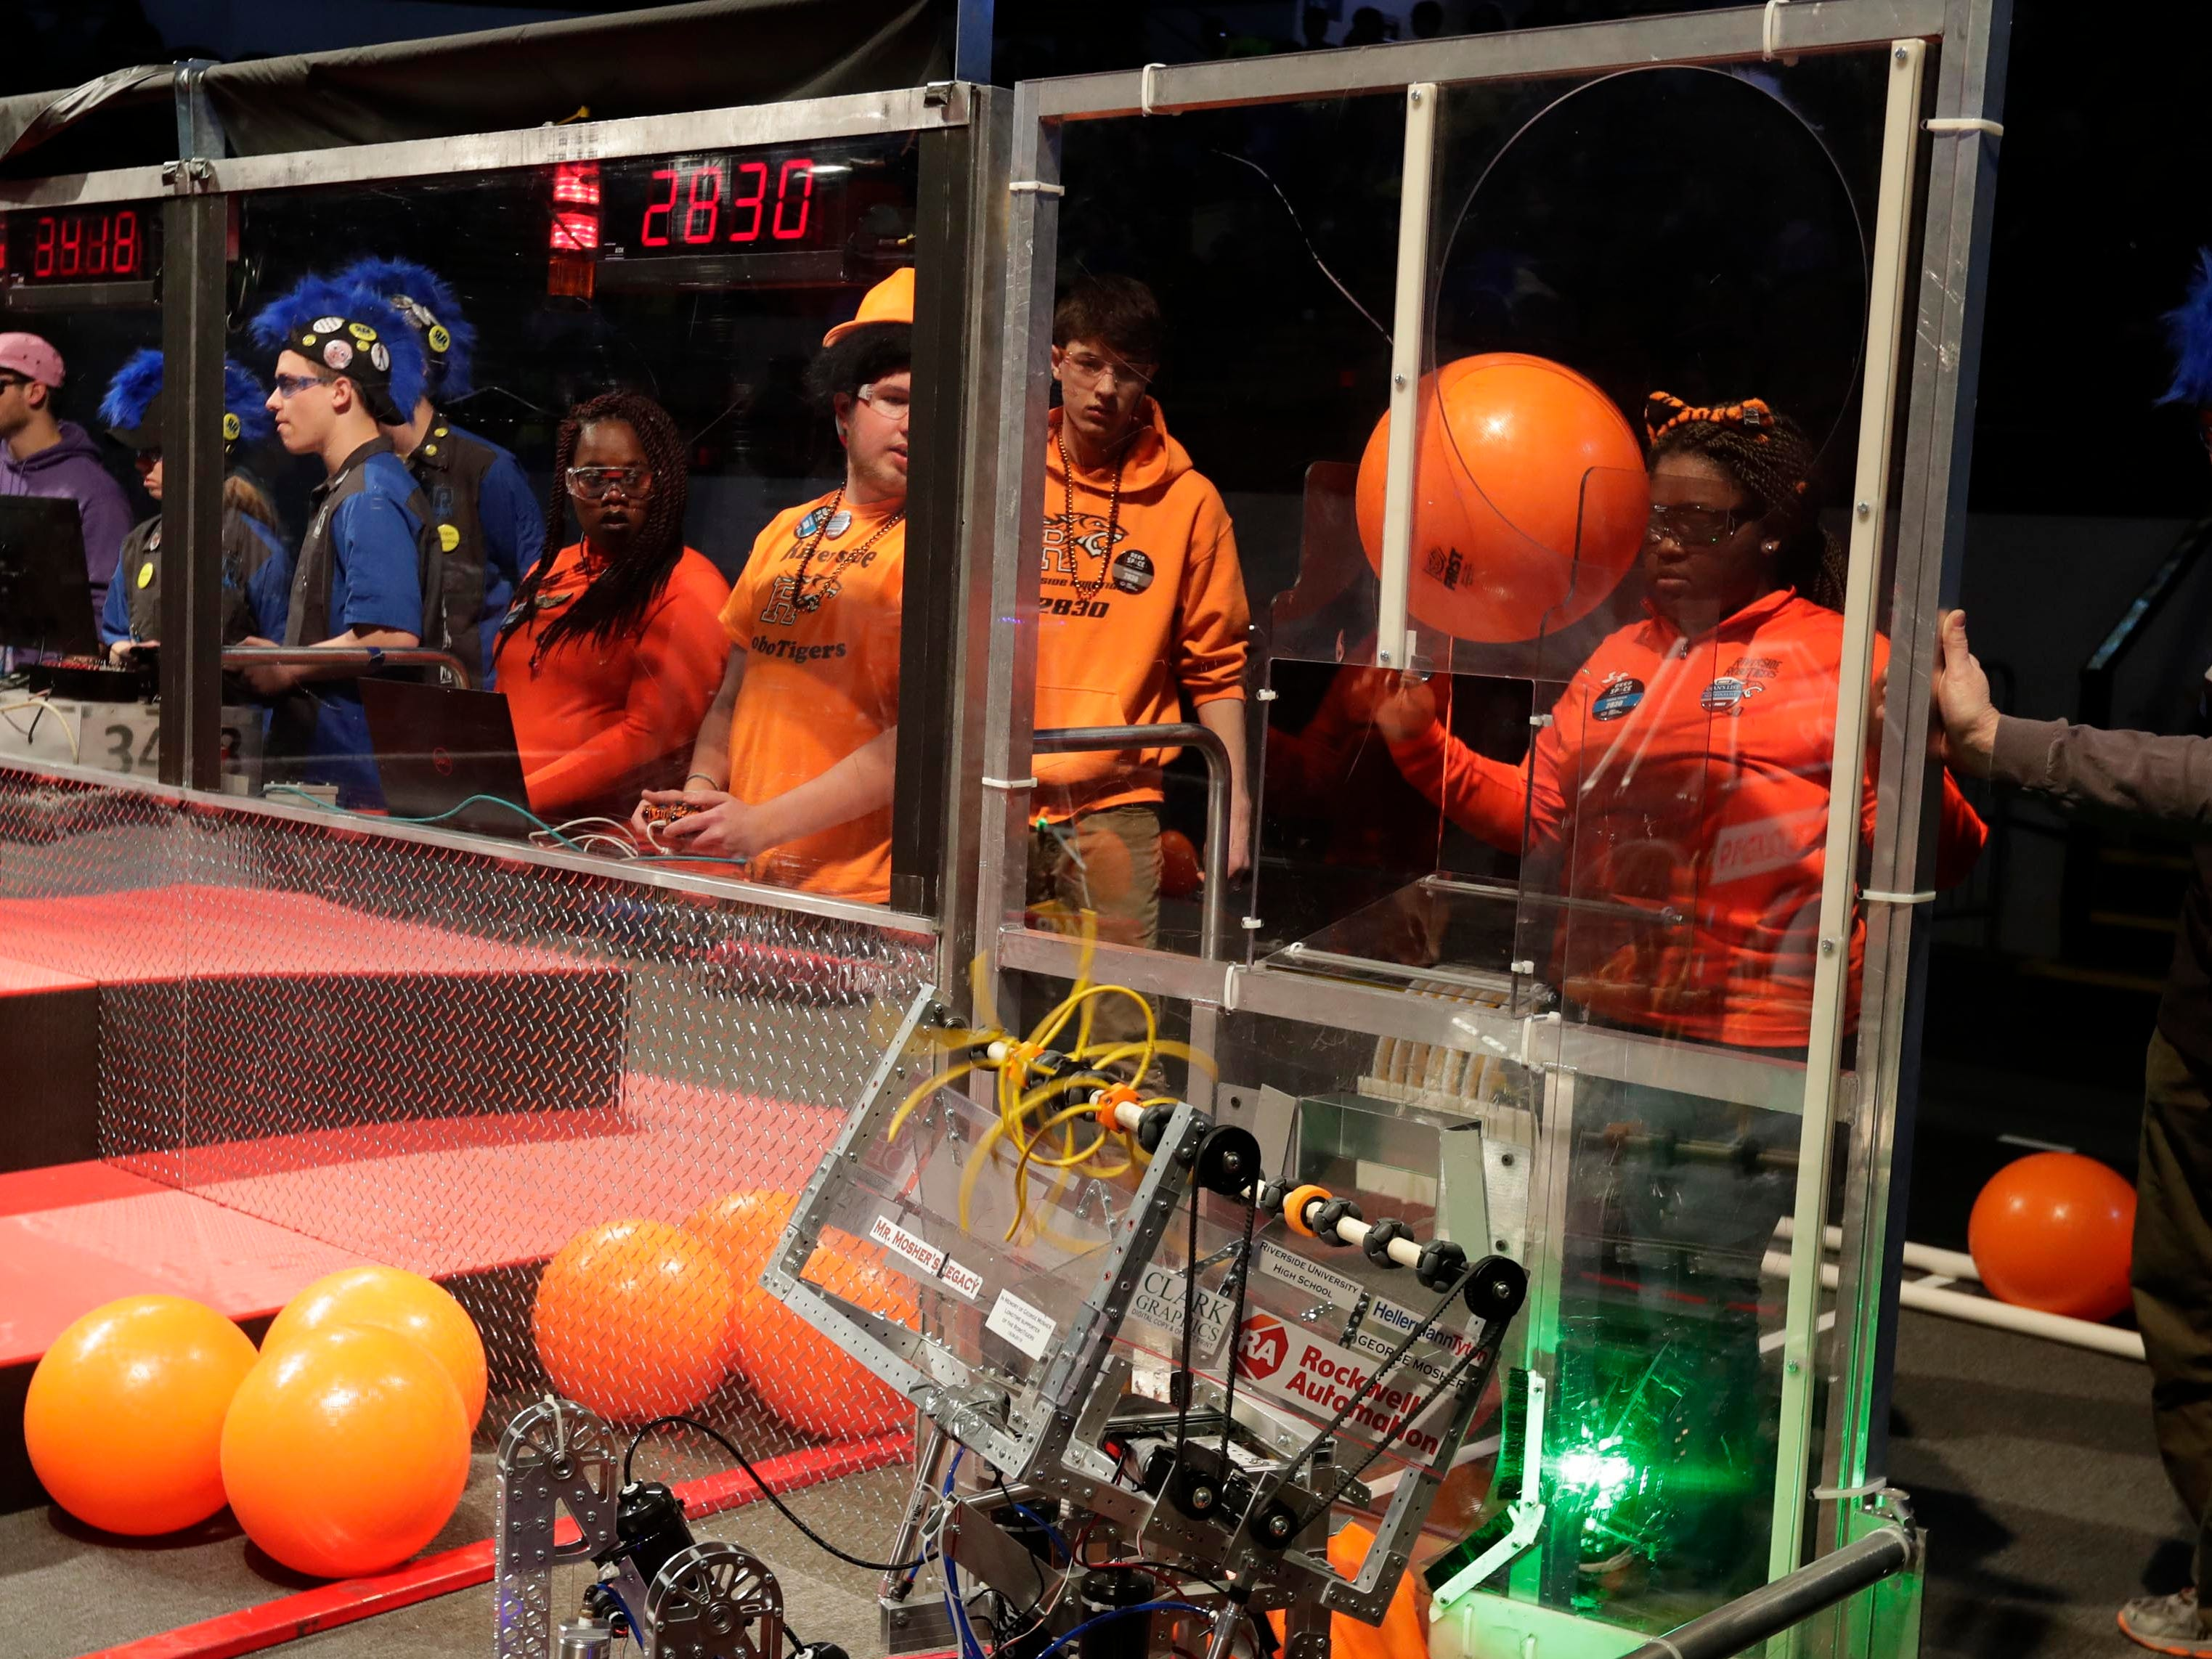 """Team members  Arianna Massey, Damien Berna, Mordechai Tinney  and Mikalayah Tulloch position their 2830 robot  to receive a ball  to move during competition at the U.S. First 2019 Wisconsin Regional Robotics Competition  at the UWM Panther Arena in Milwaukee. The highly successful robotics team, the Riverside High School RoboTigers, is known as the """"the team with girls on it."""""""